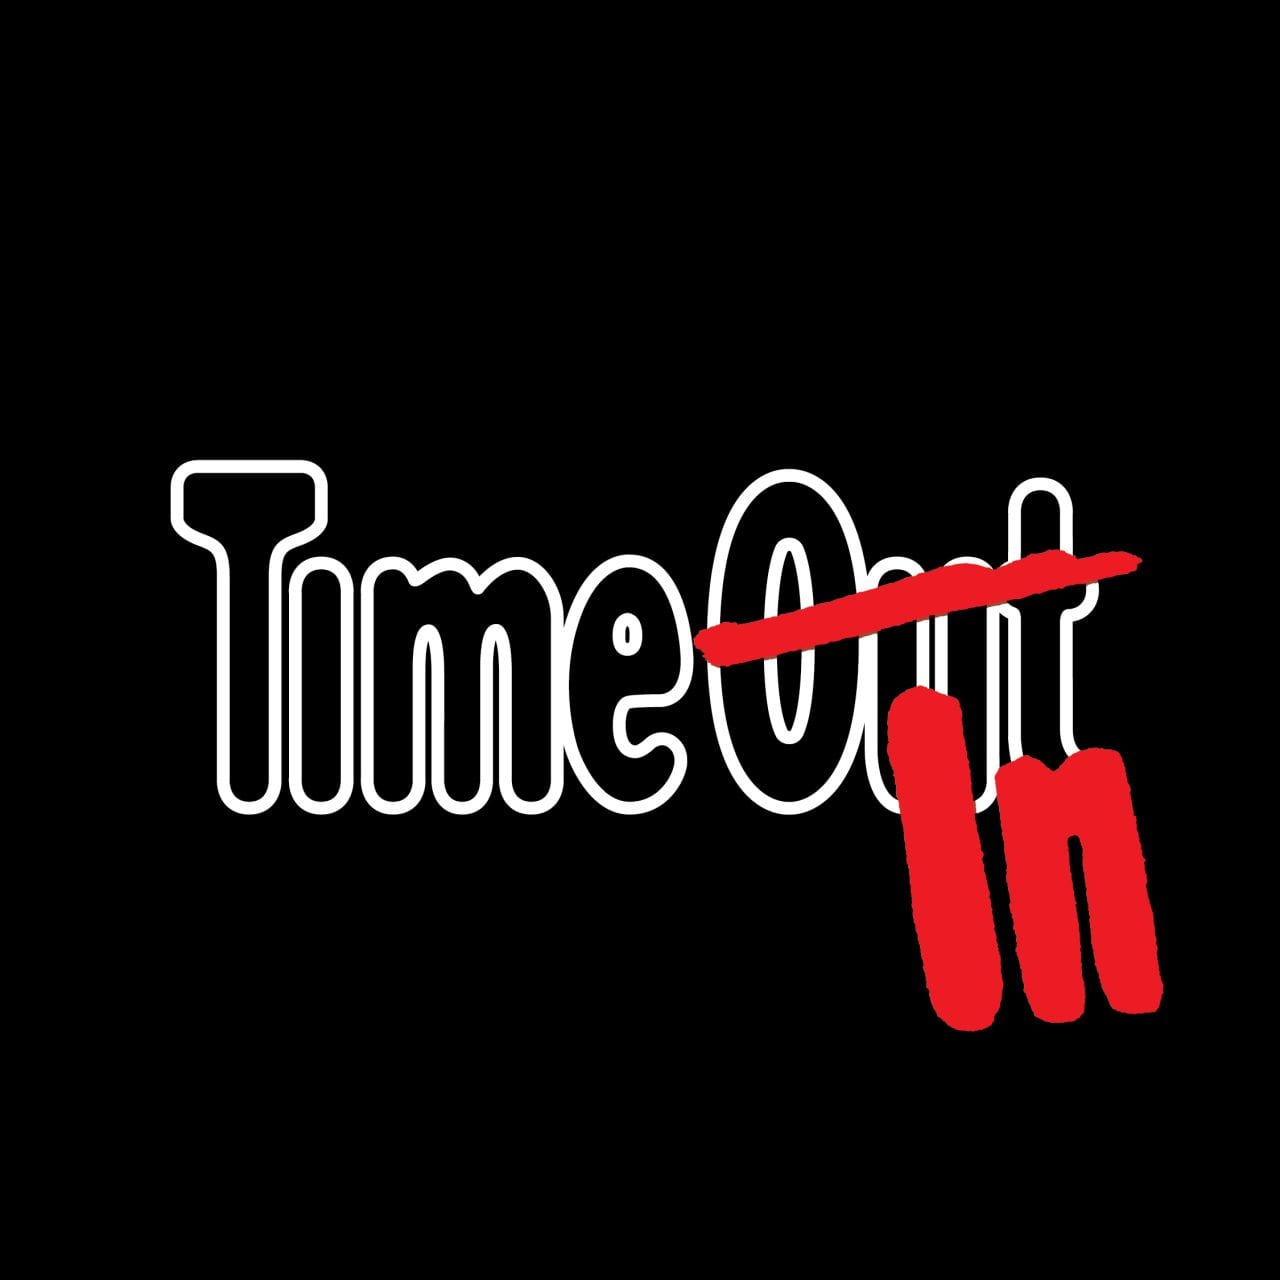 """Time Out Is All """"In"""" on Rebuilding Its Business Post-Pandemic"""